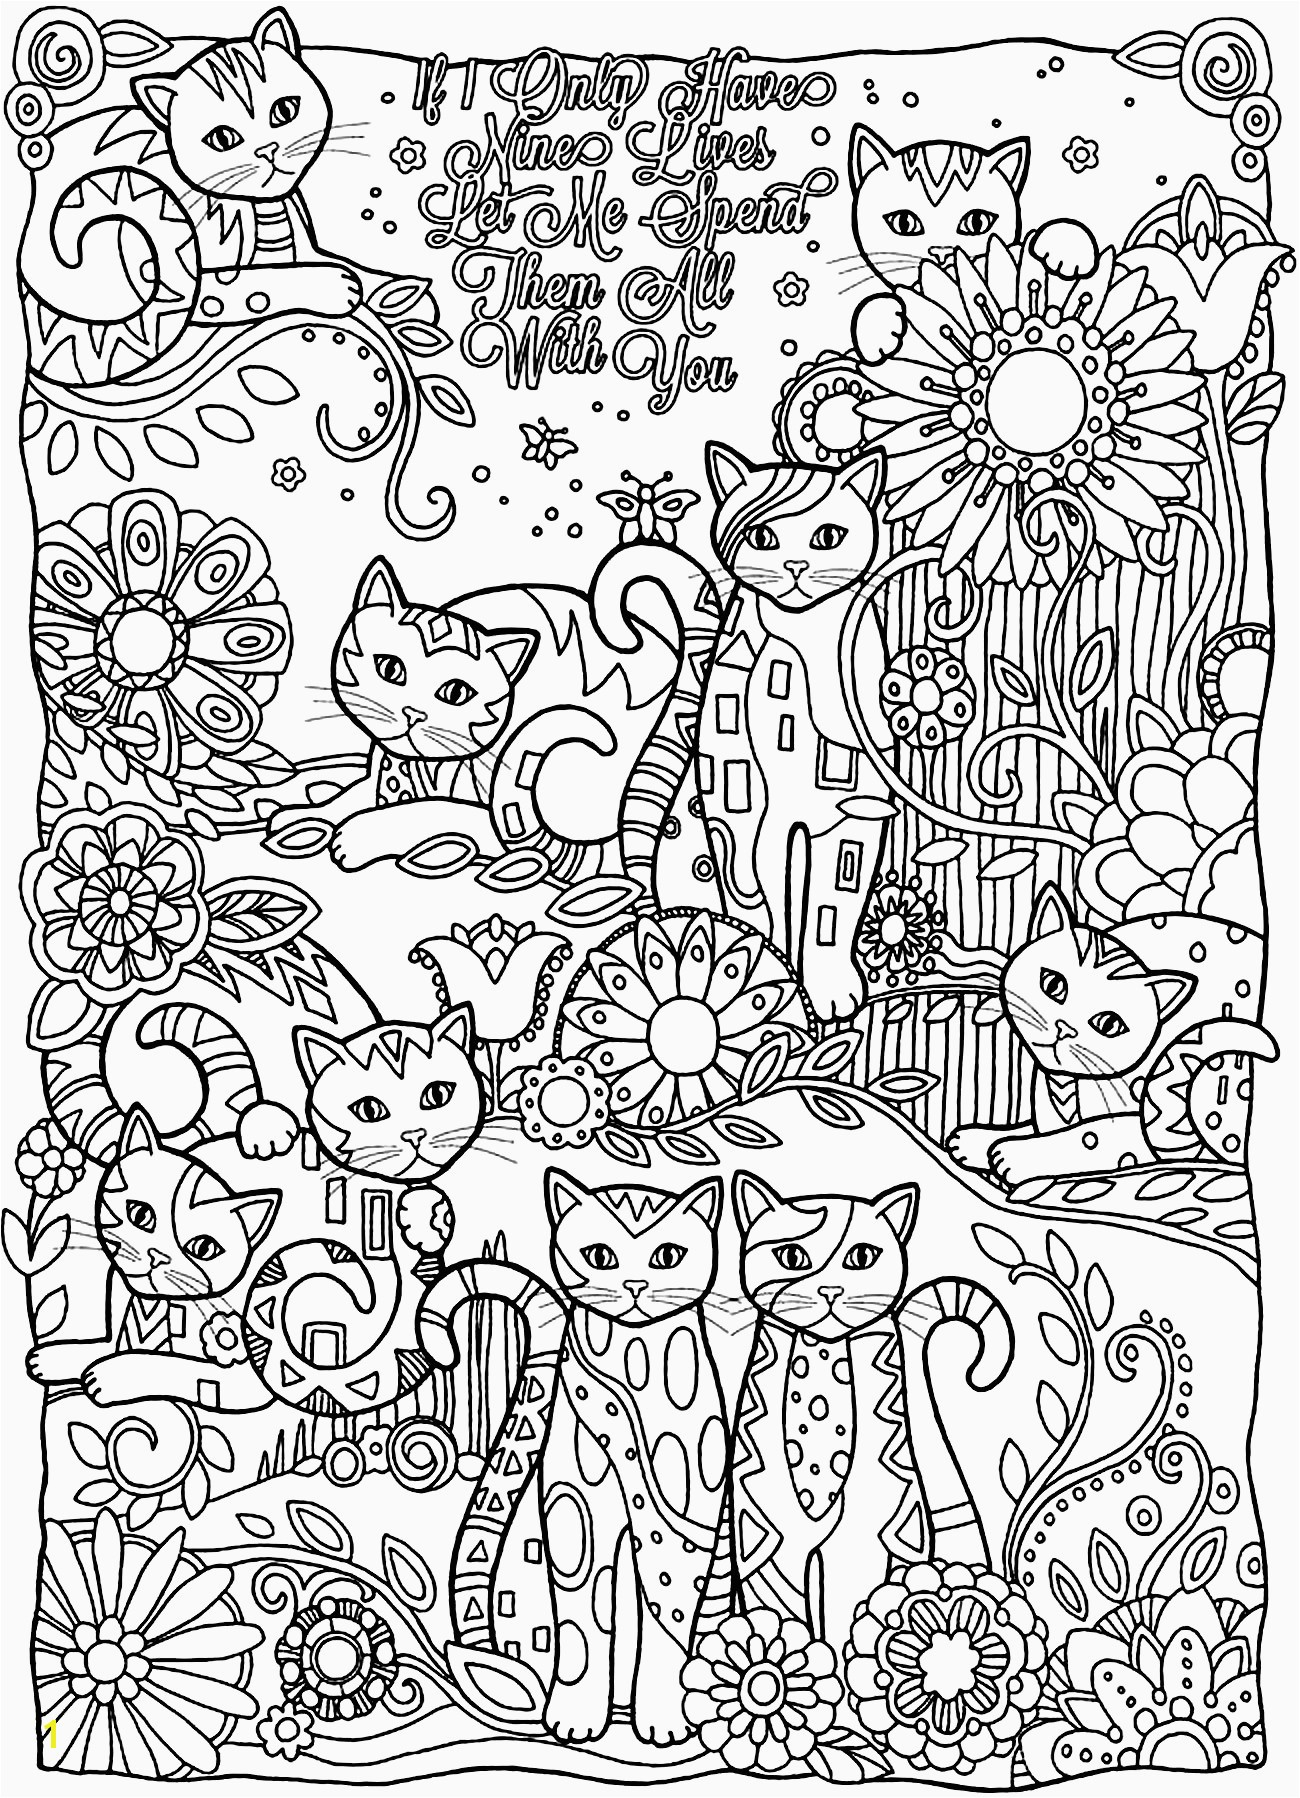 Thanksgiving Multiplication Coloring Pages New Thanksgiving Coloring Sheets Free Unique Cool Od Dog Coloring Pages